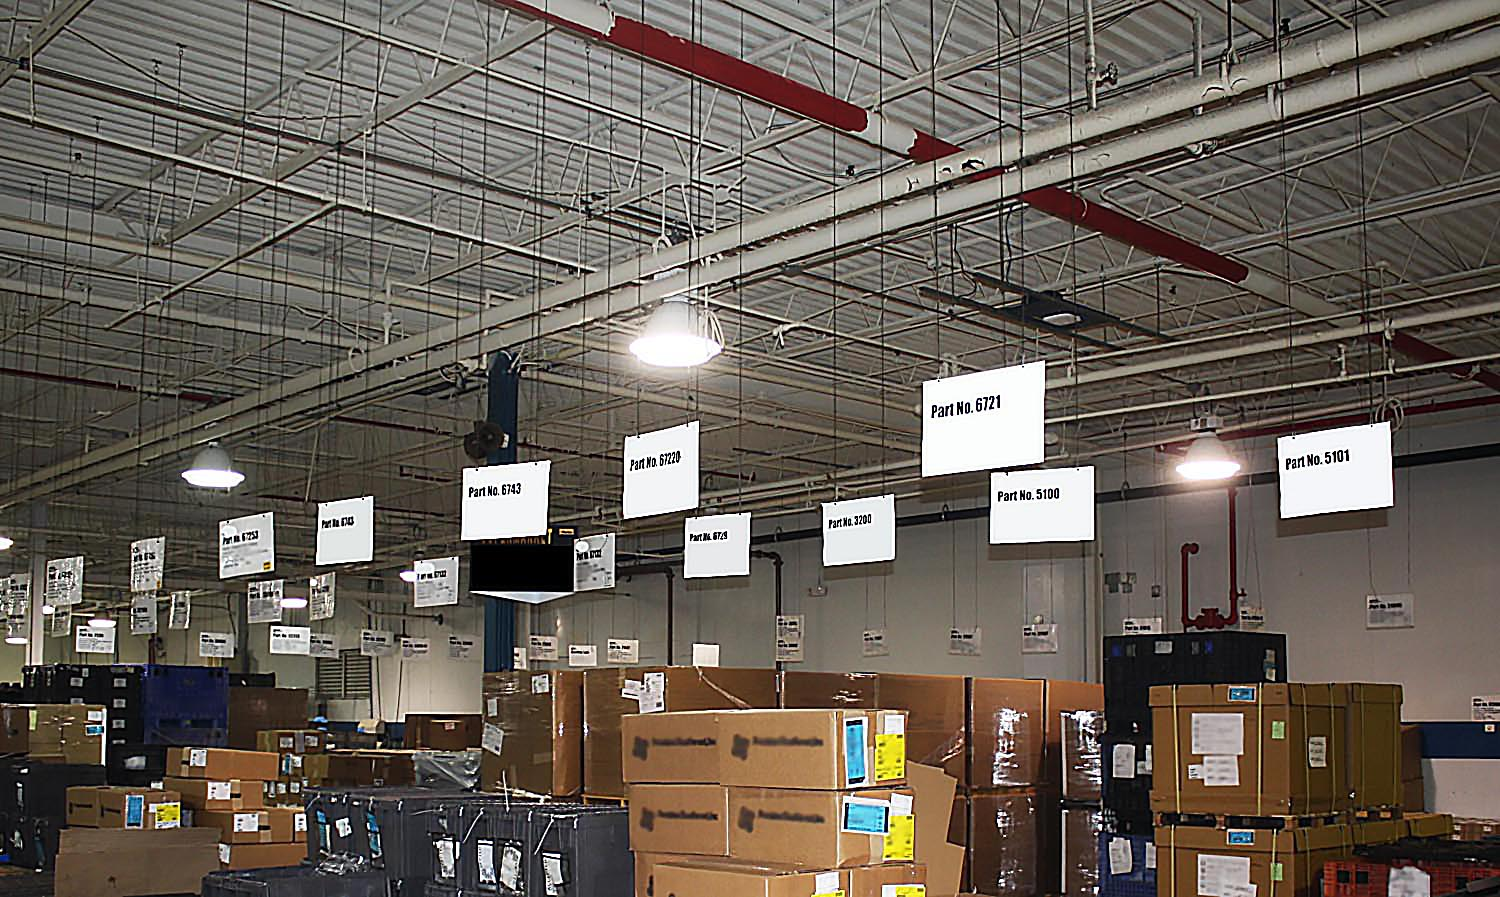 Warehouse ceiling signs hanging solutions - CeilingOutfitters.com